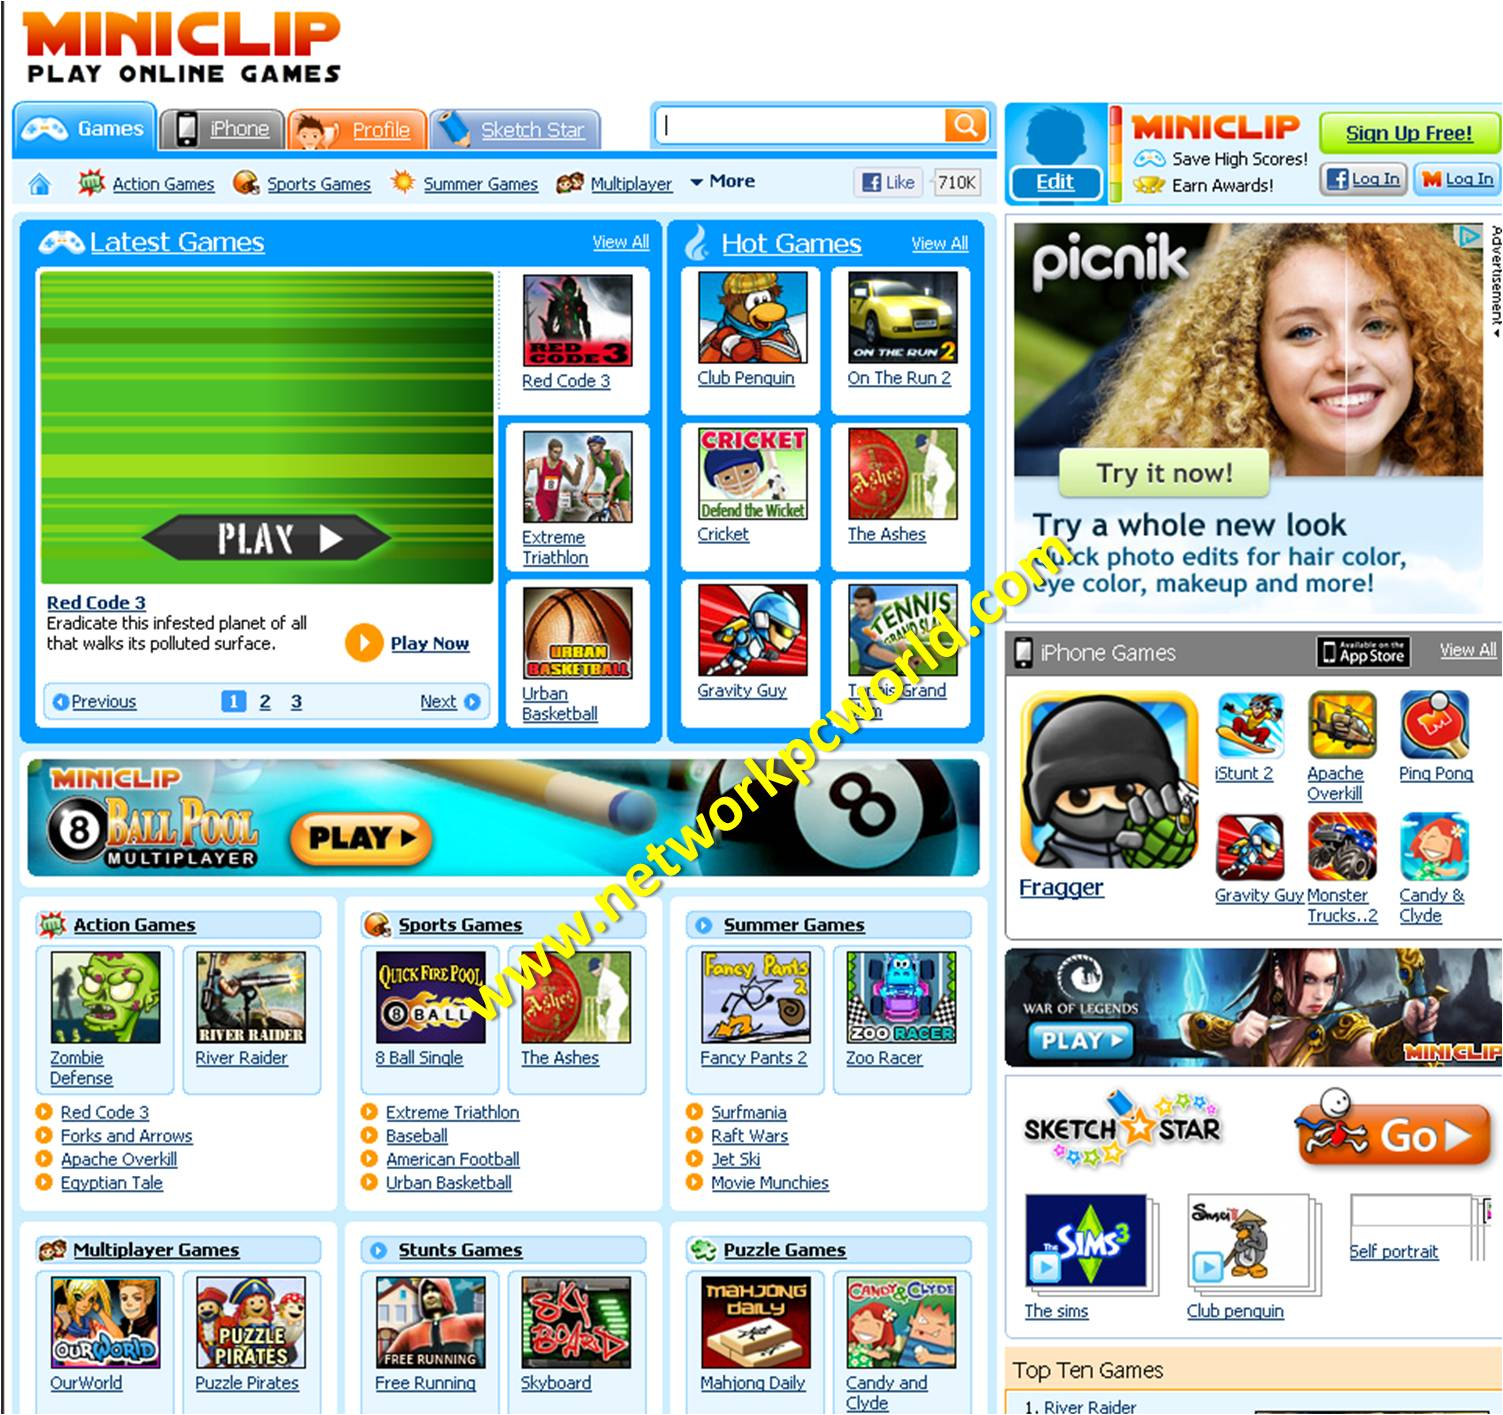 games at miniclips